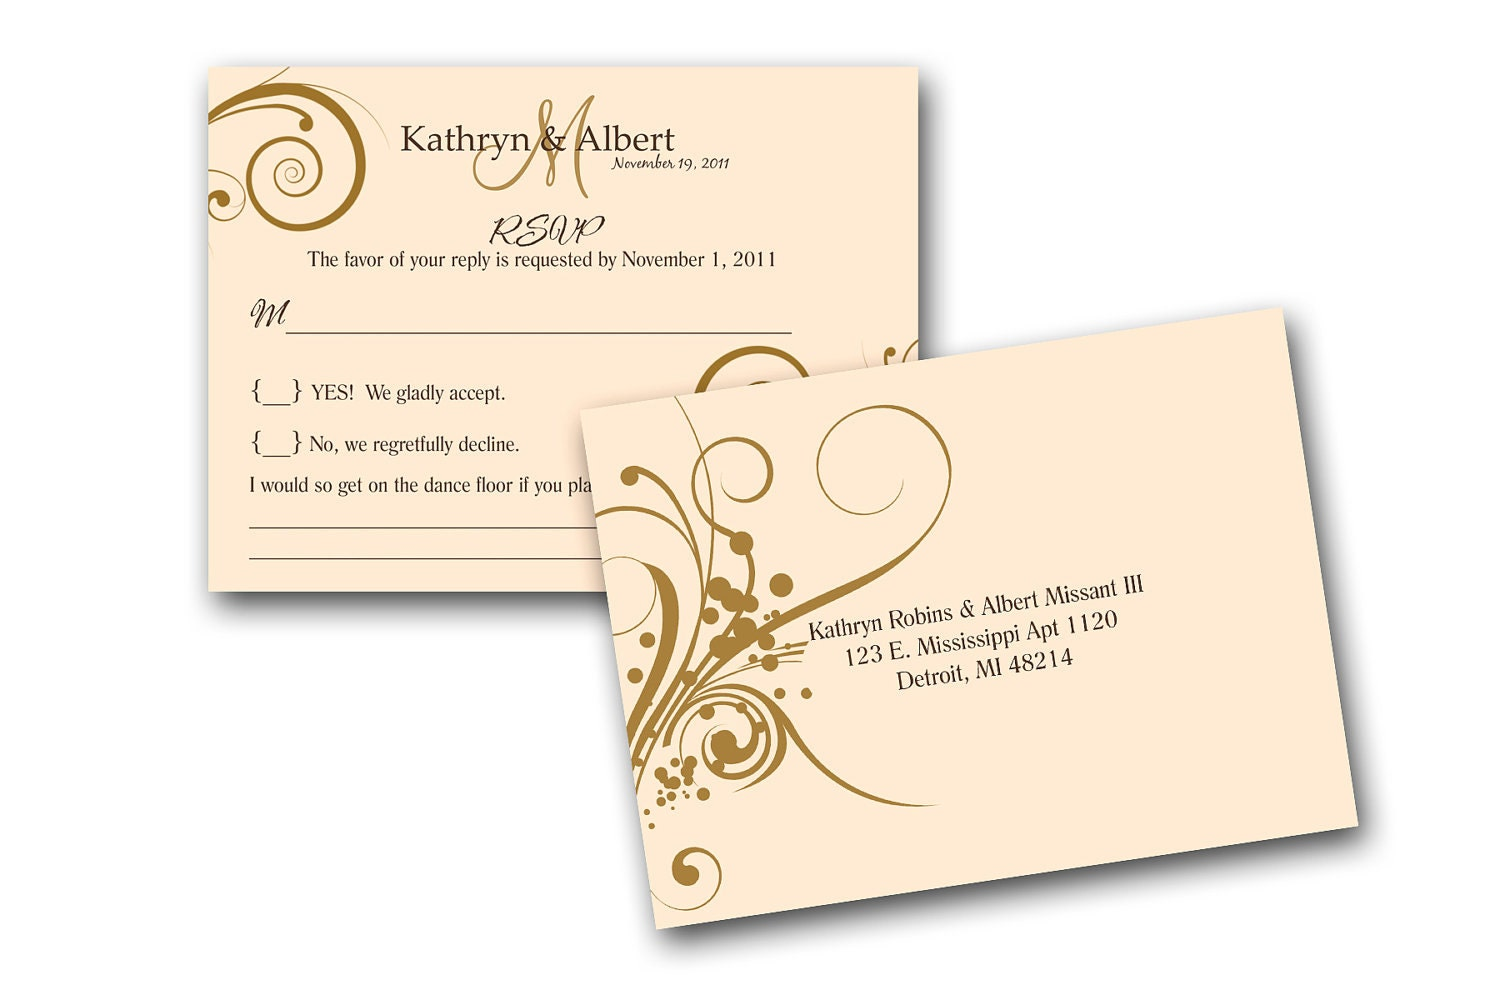 Invitation Cards For Wedding: RSVP Cards To Match Wedding Invitations A By Gwenmariedesigns